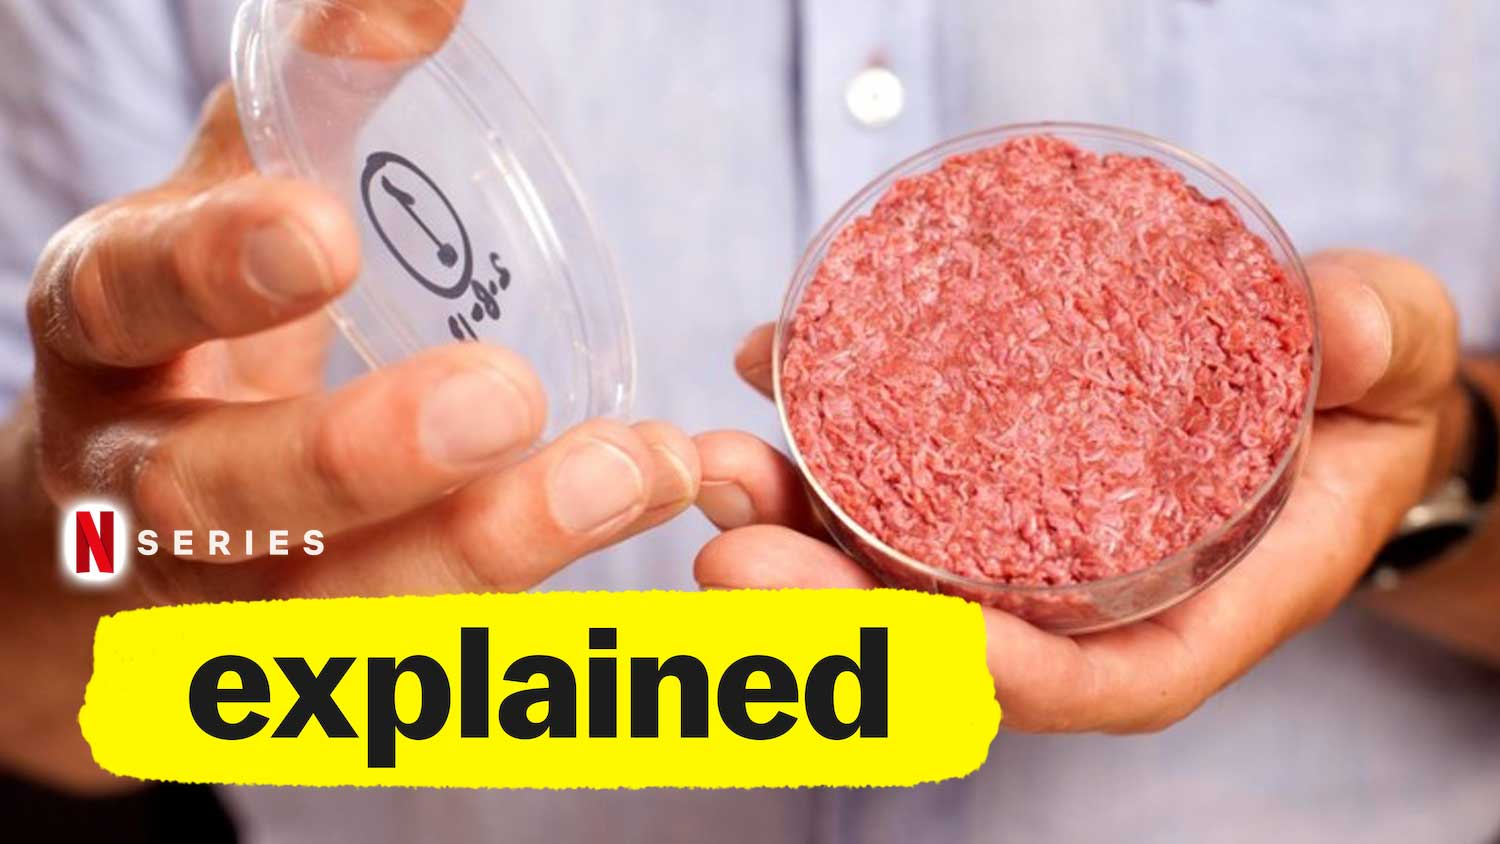 Netflix's 'Explained' Says the Future of Meat Is Cruelty-Free